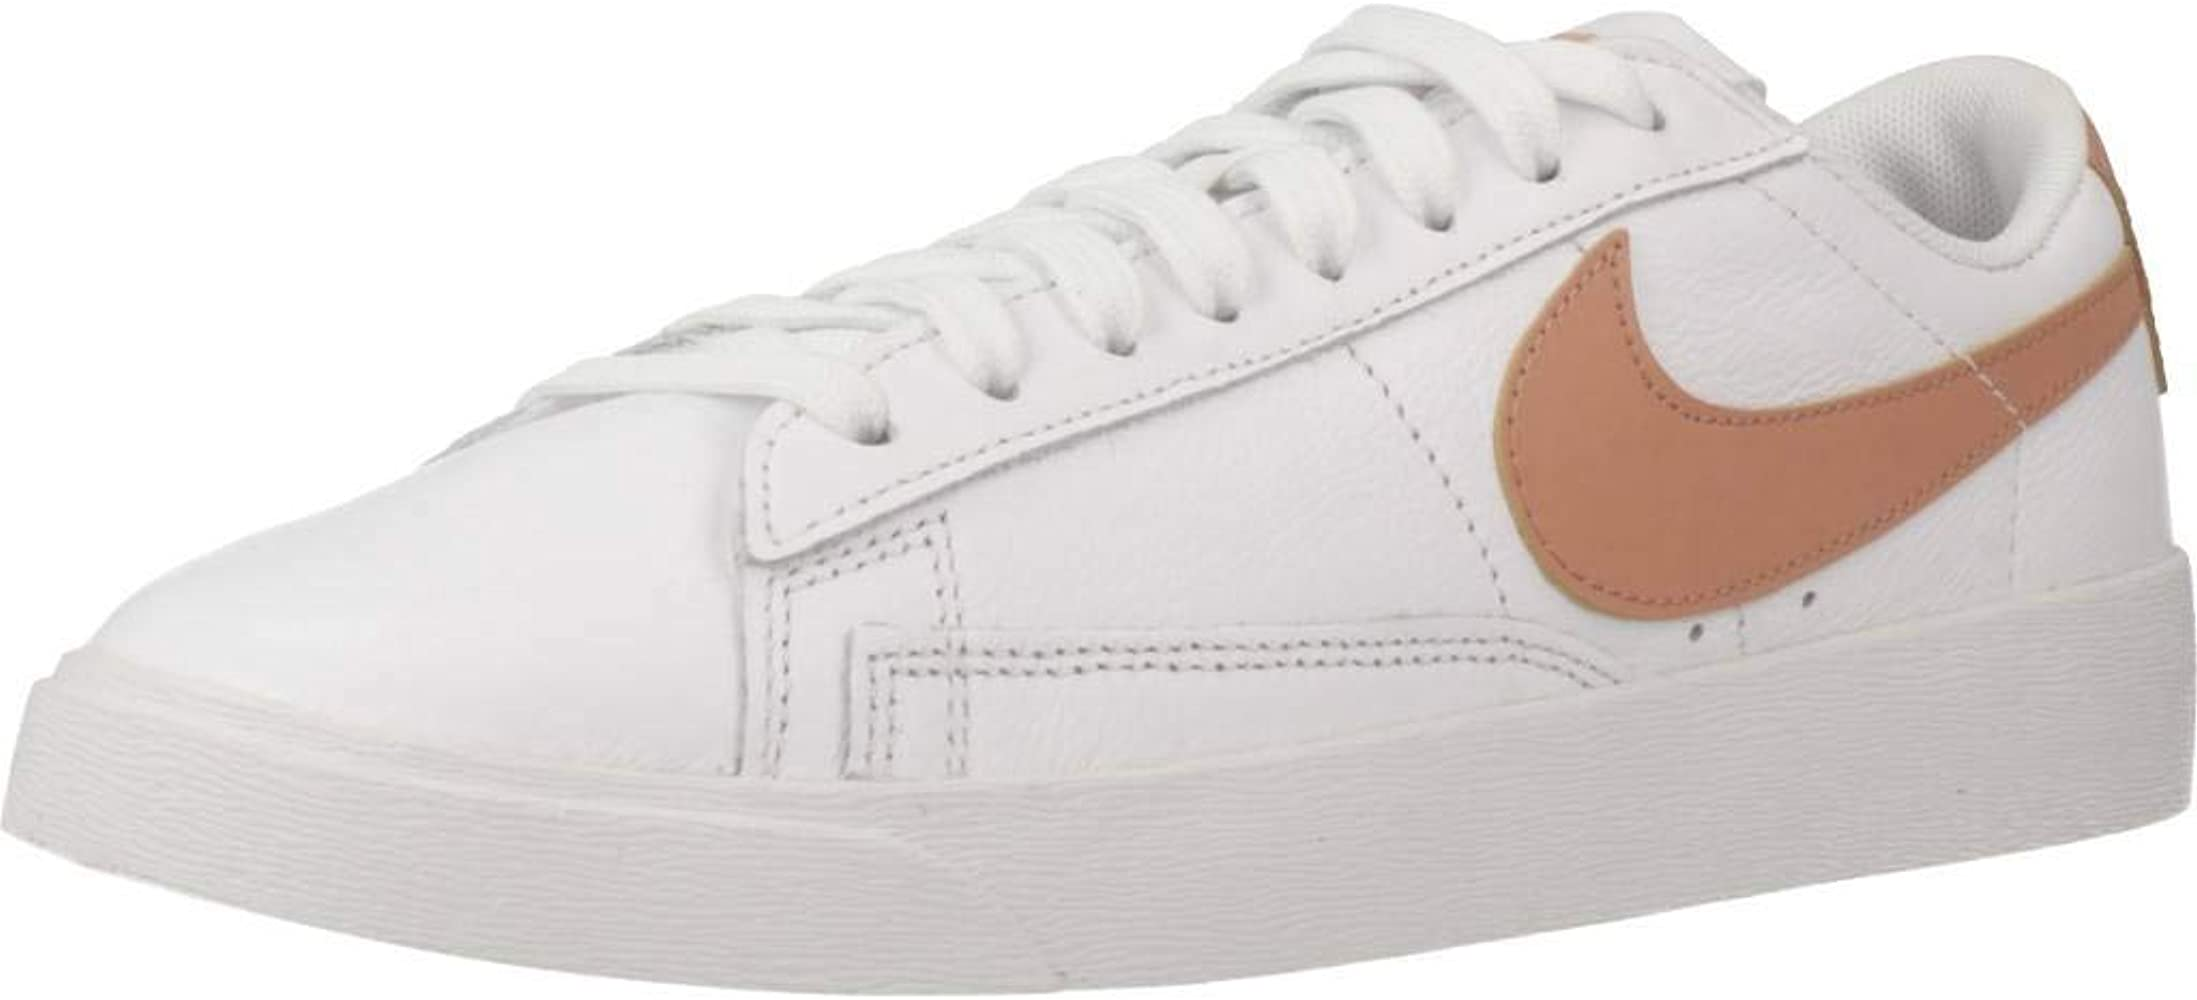 Amazon.com | Nike Women's Blazer Low LE White/Rose Gold | Shoes